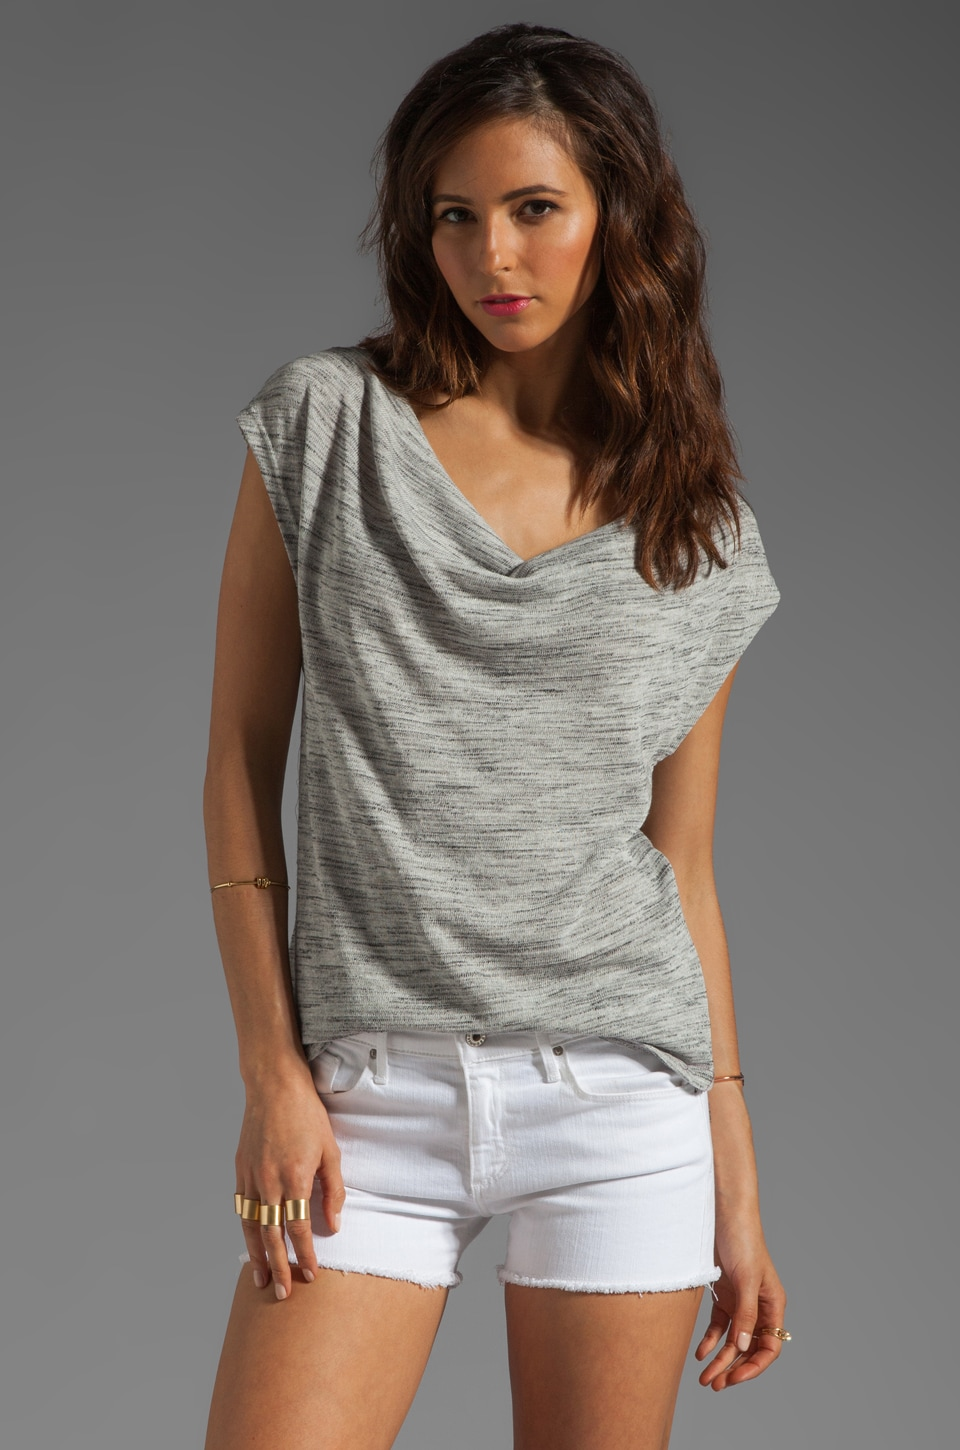 Soft Joie Clelia Spaced Dye Top in Dim